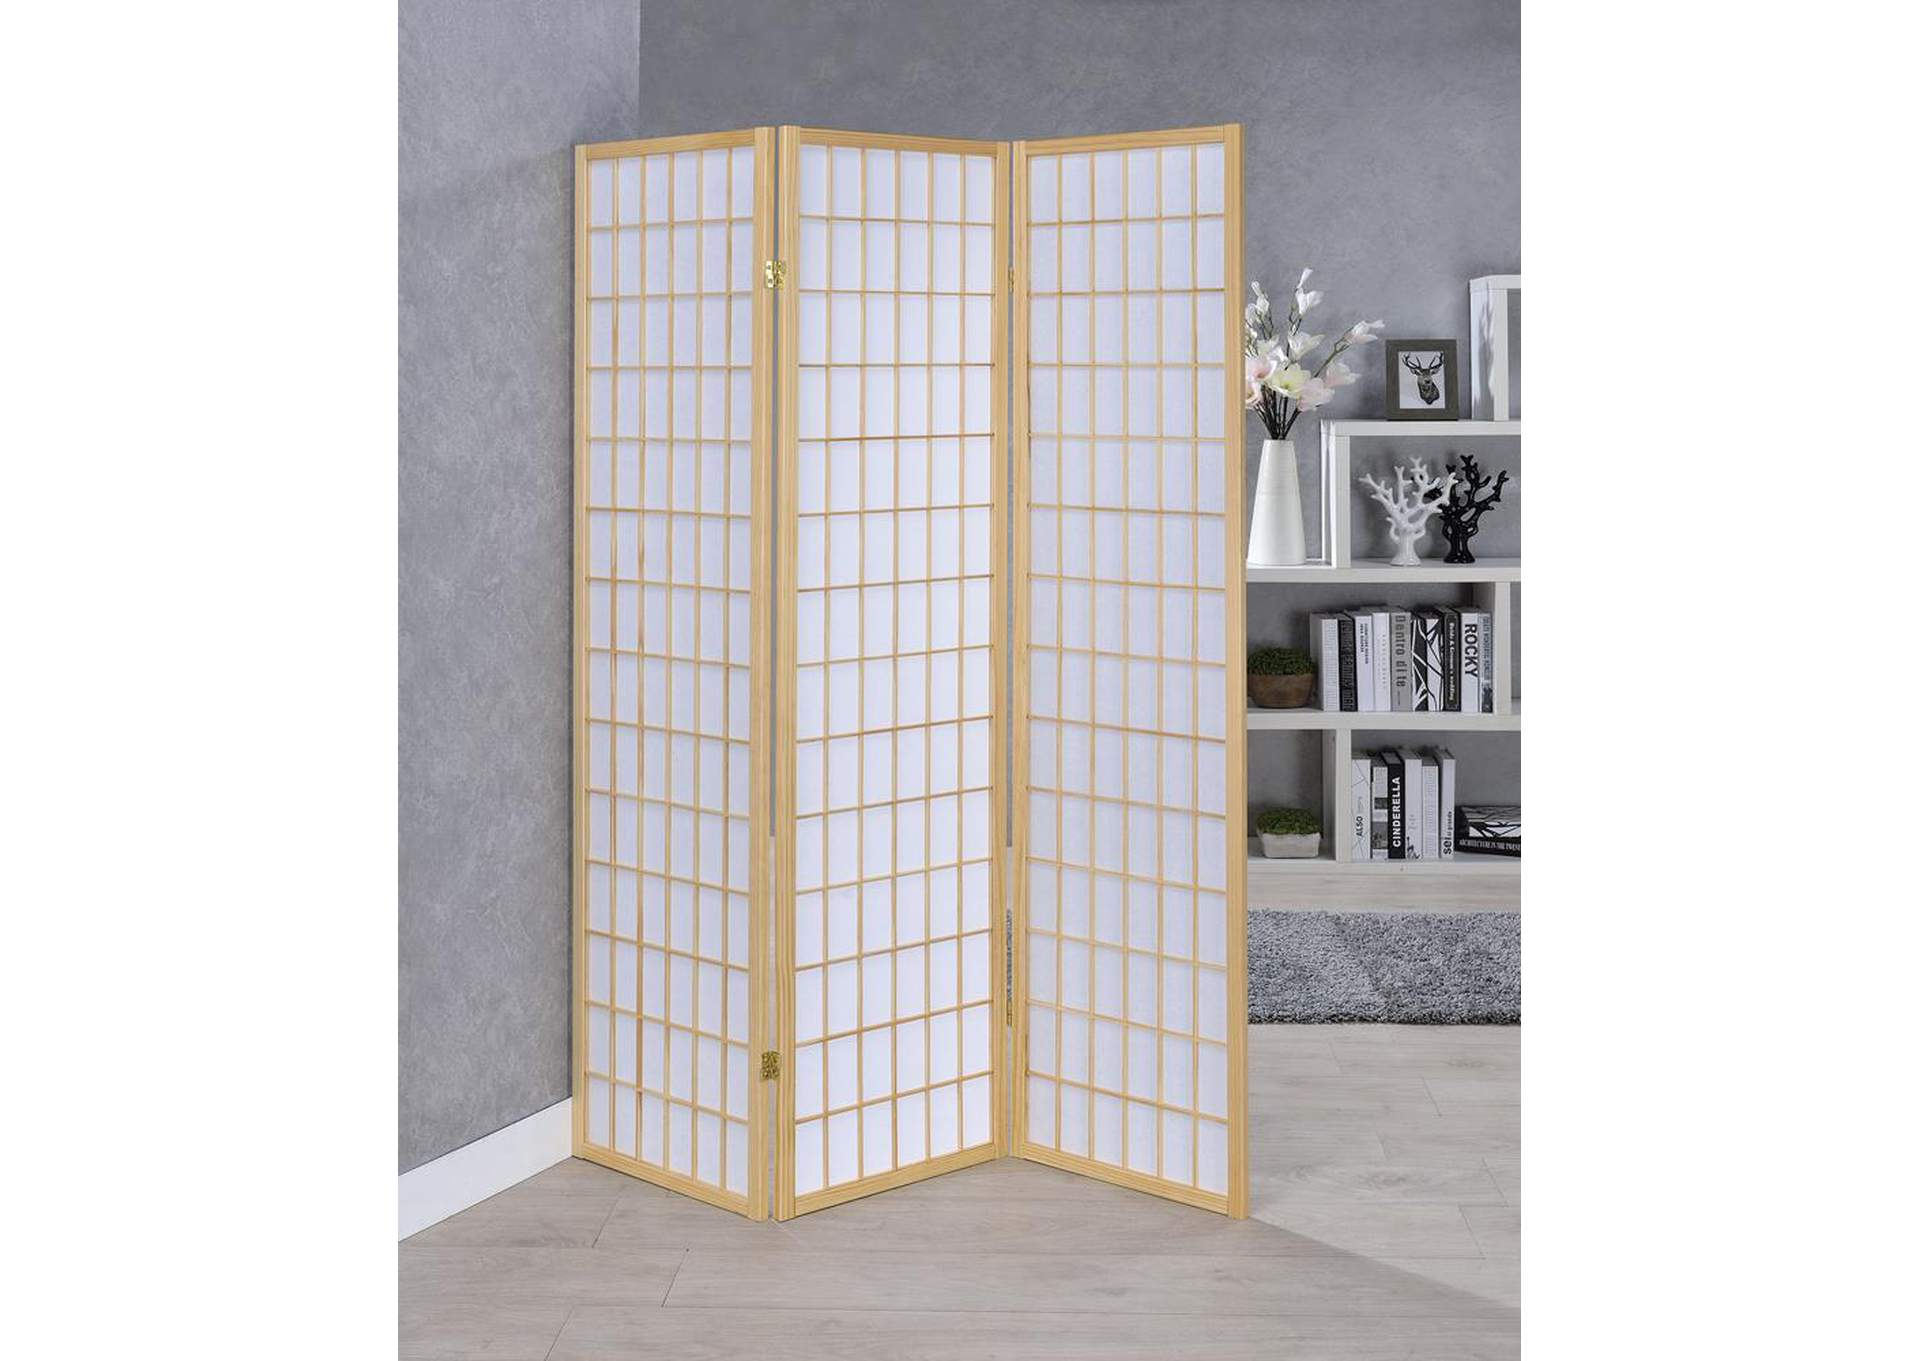 Vip Furniture Outlet Upper Darby Pa Room Divider